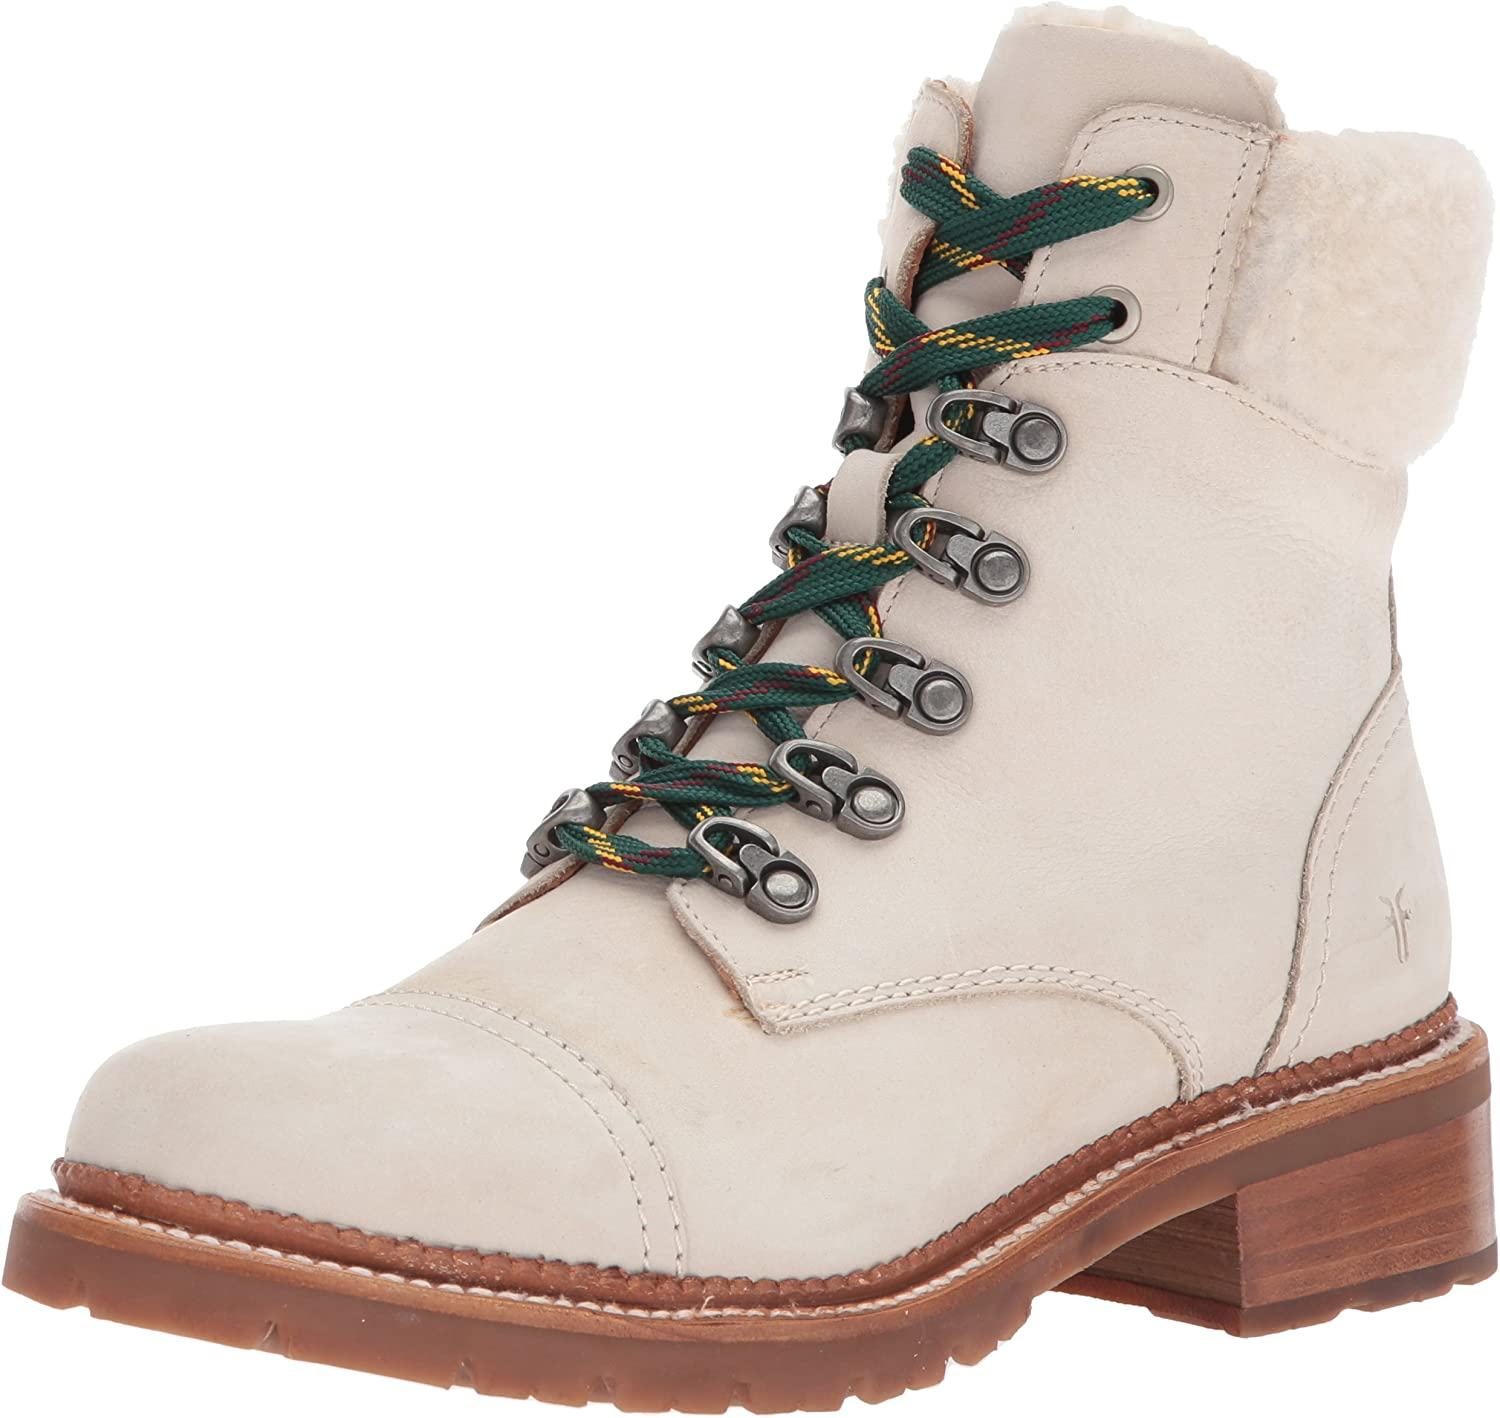 Frye Women's Samantha Hiker Combat Boot